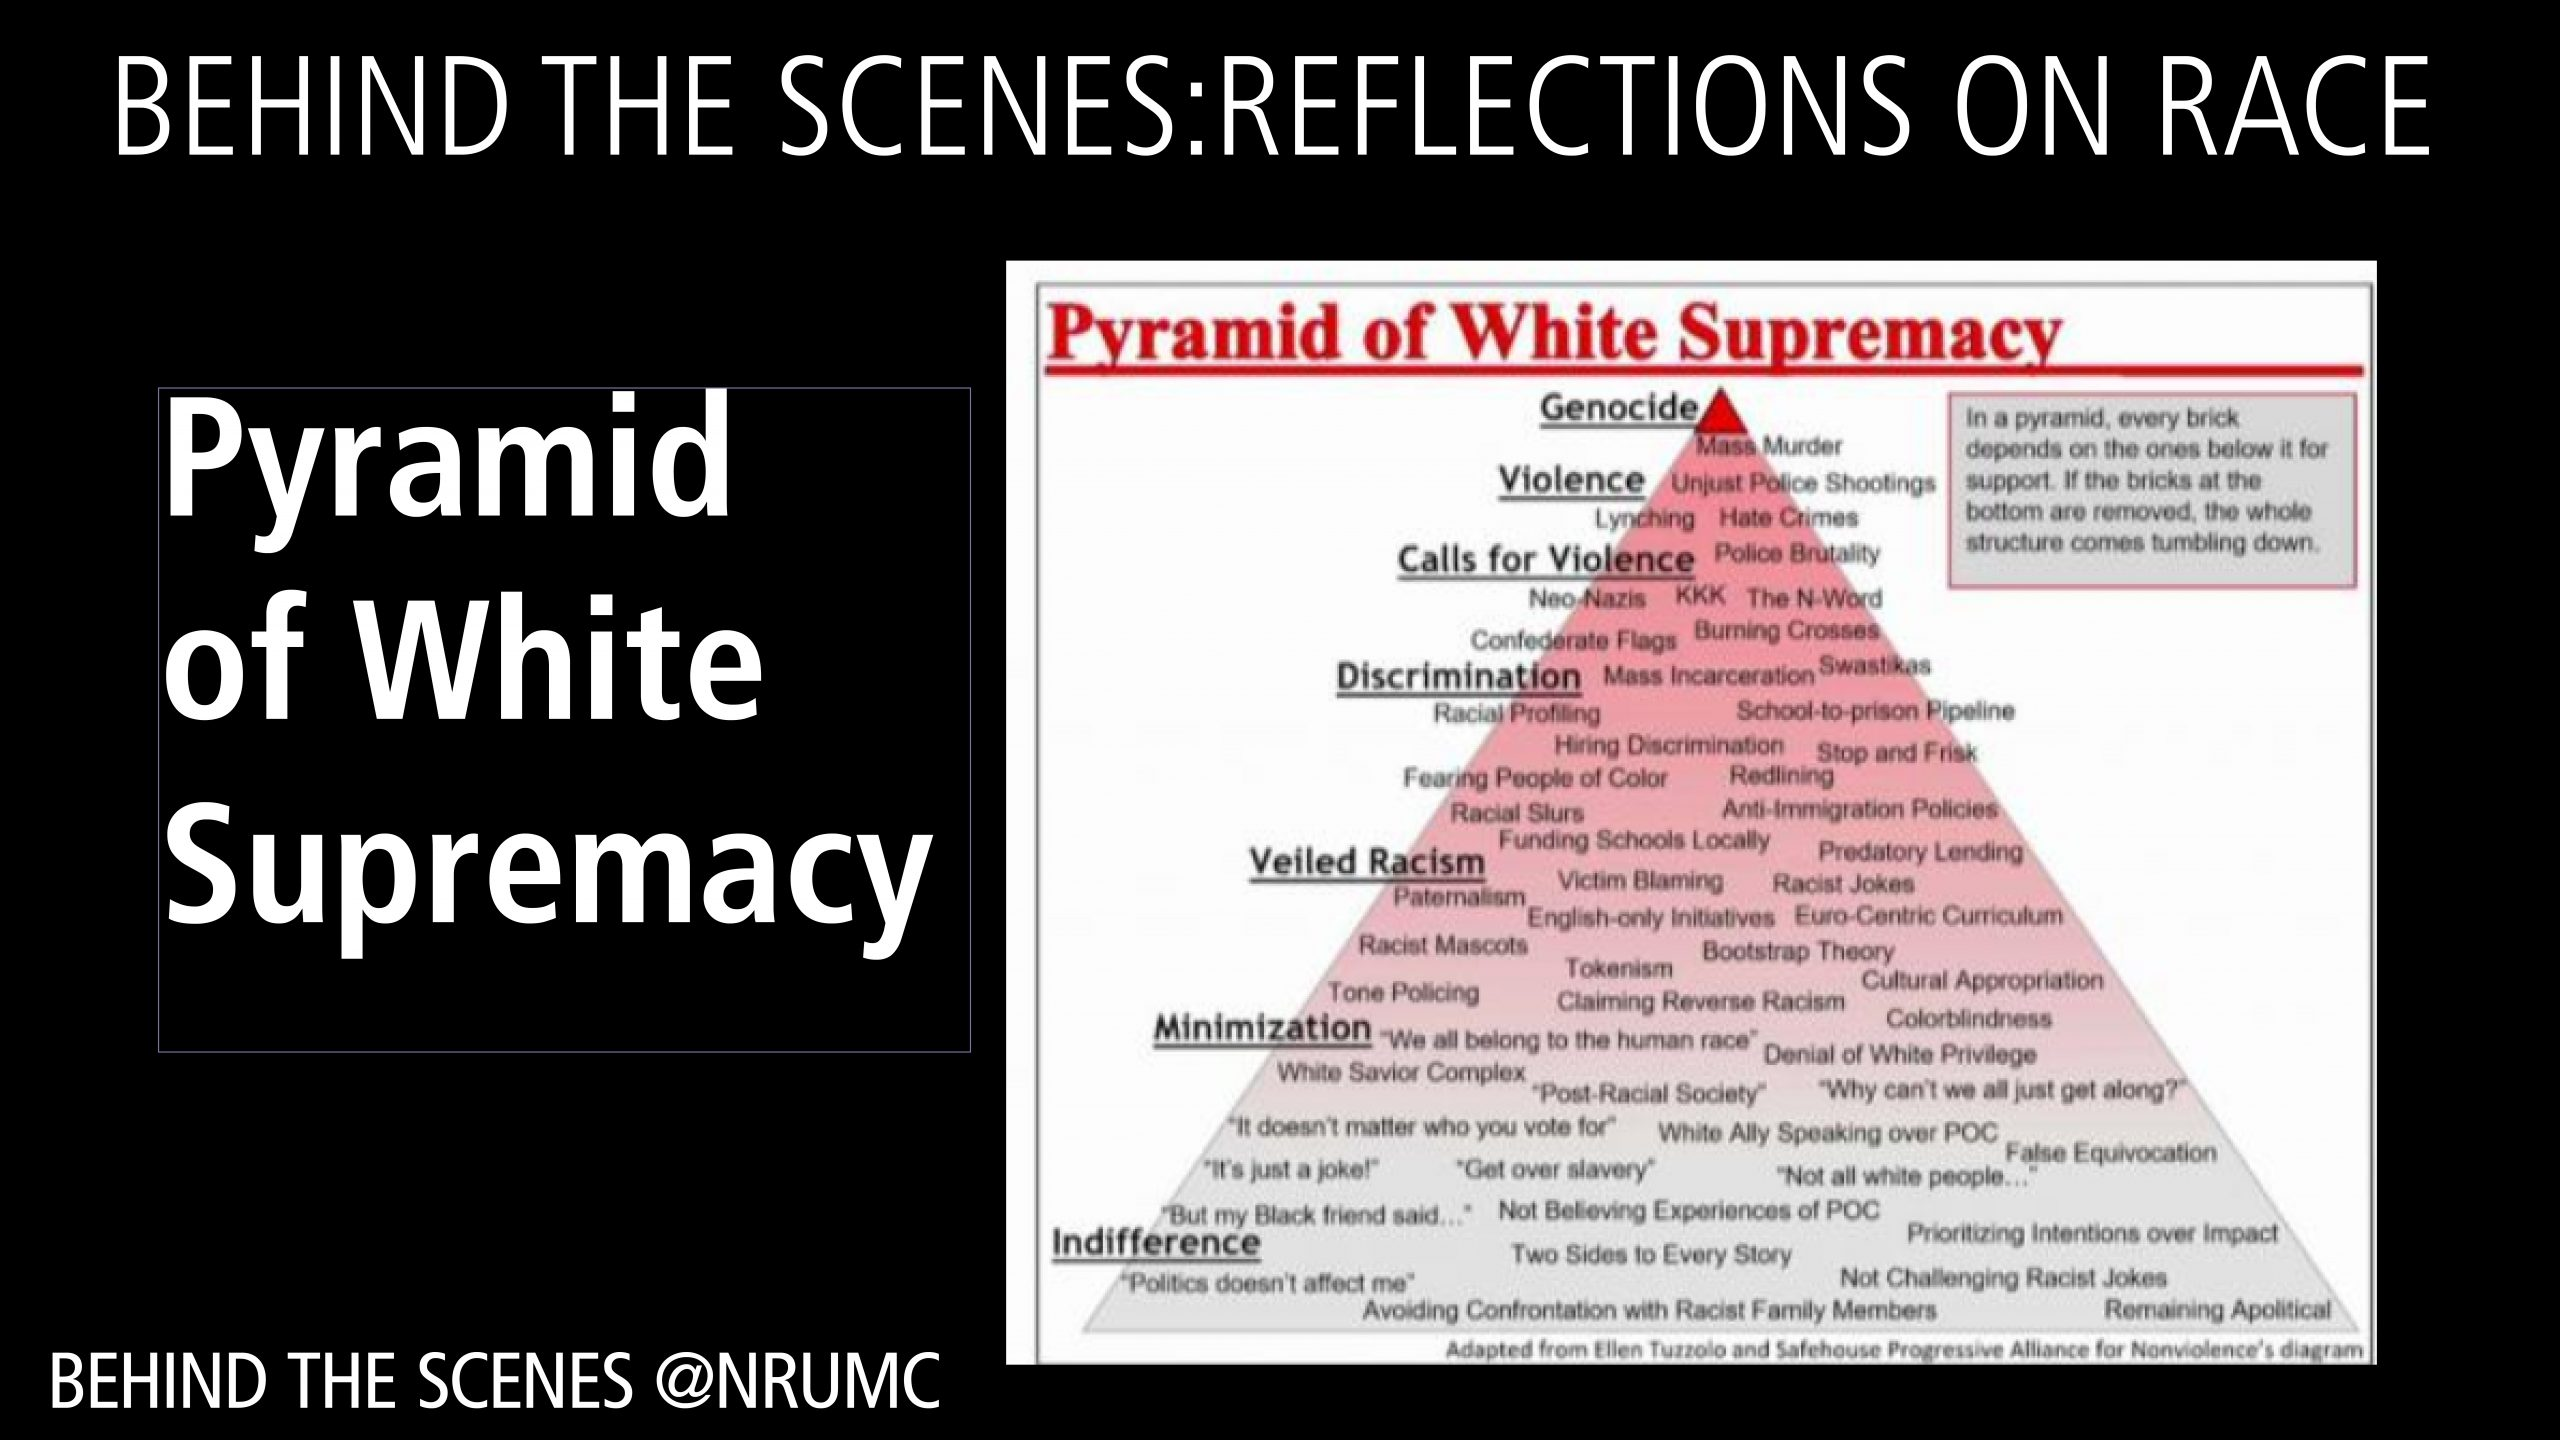 Reflections on Race: Pyramid of White Supremacy